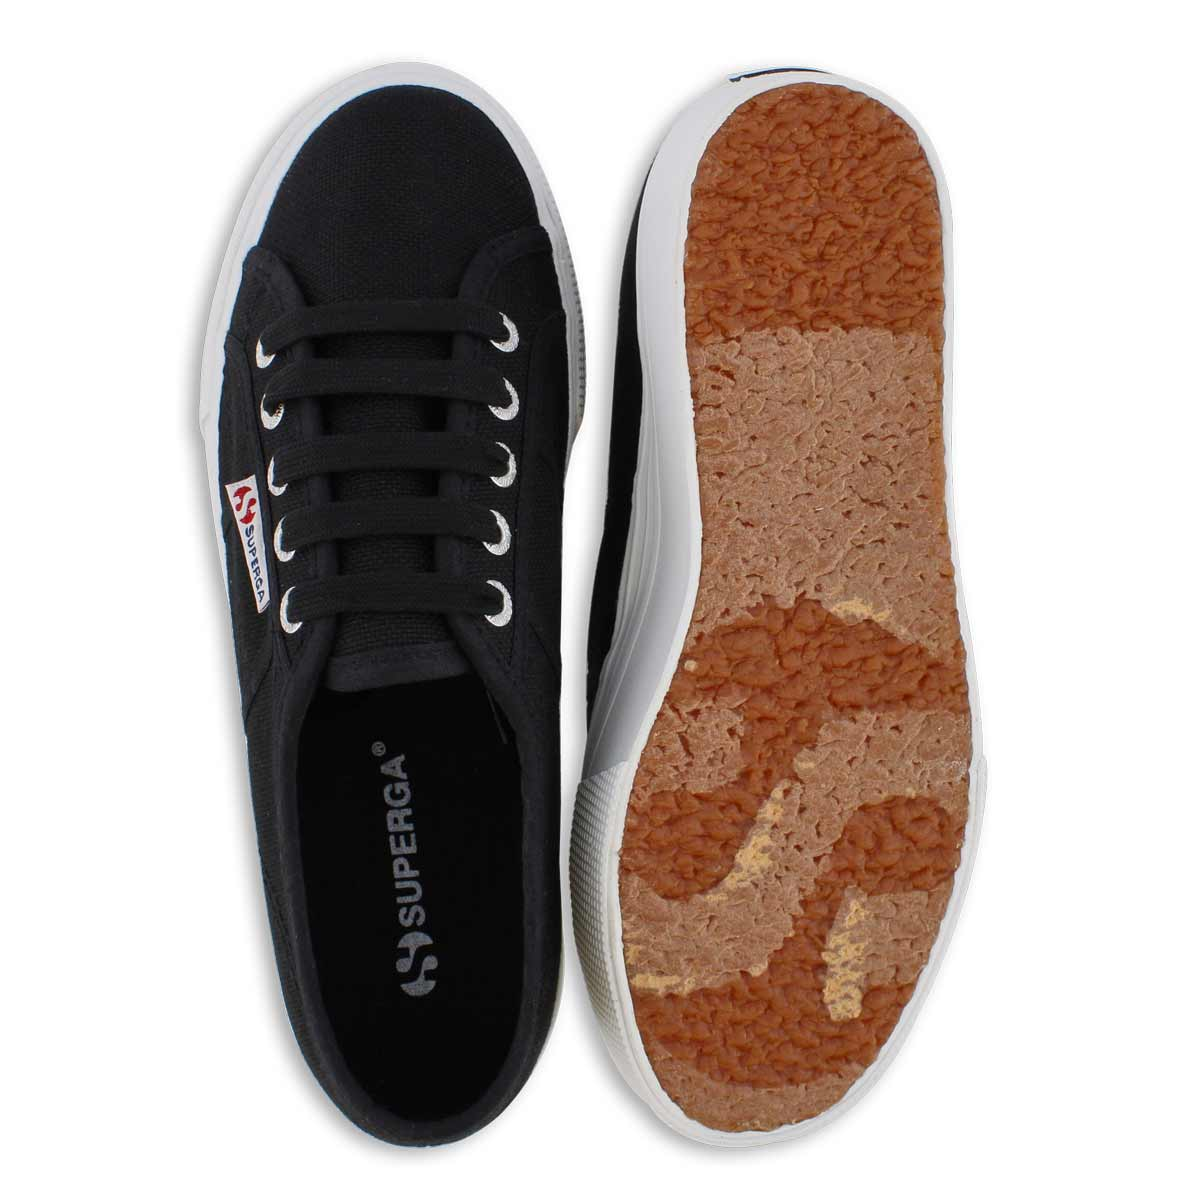 Lds Platform black canvas sneaker